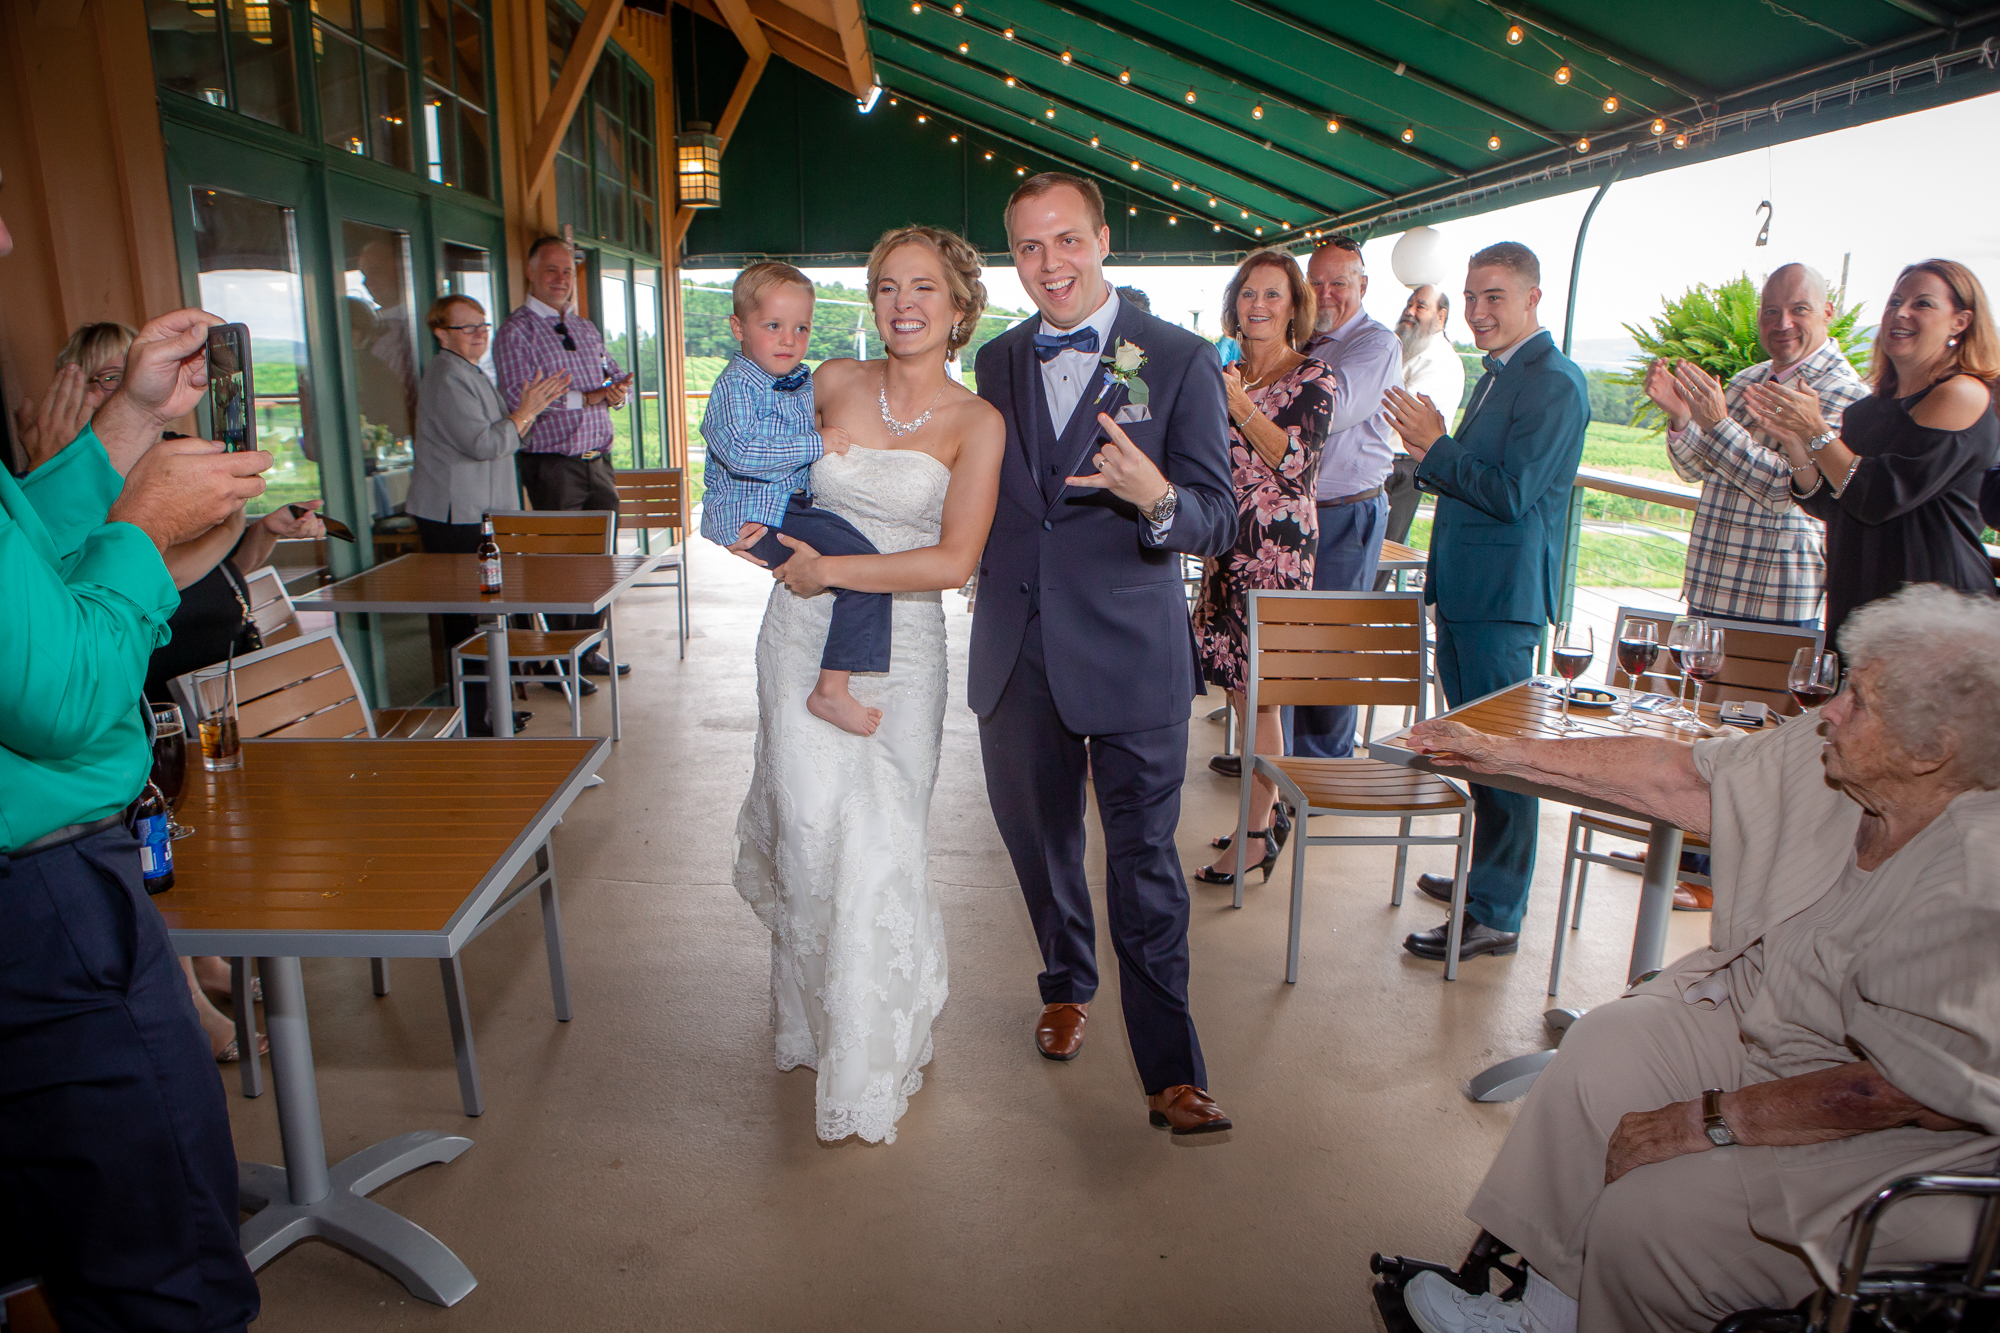 Glenora-Wine-Cellars-Dundee-NY-Wedding-Photography-Joe-Hy